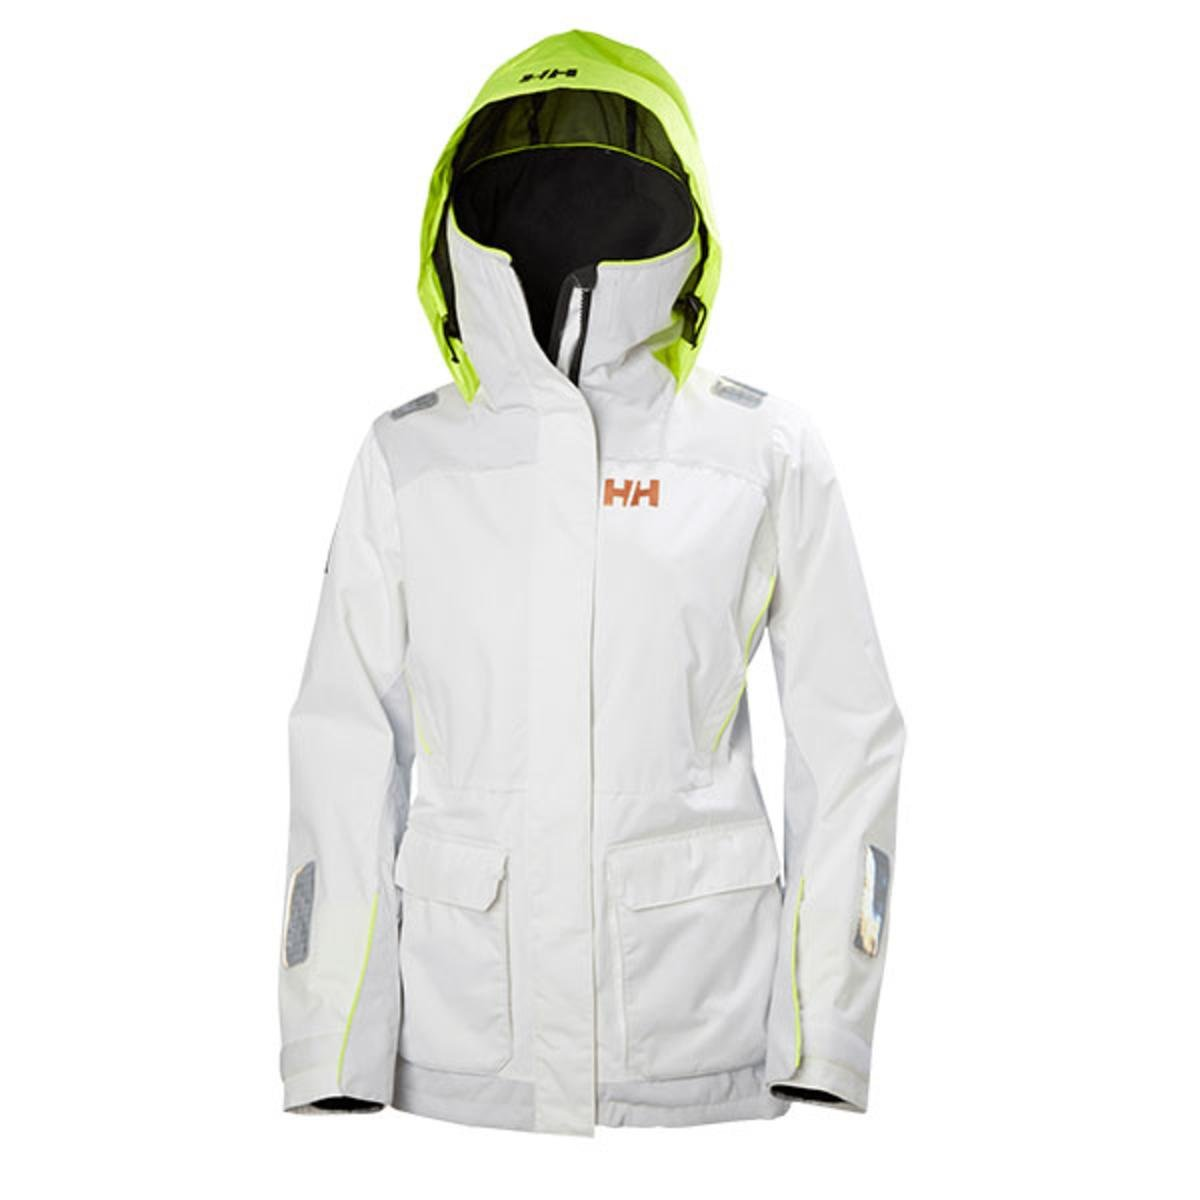 Helly Hansen Women s Newport Coastal Jacket - The Warming Store 7fd92808a6